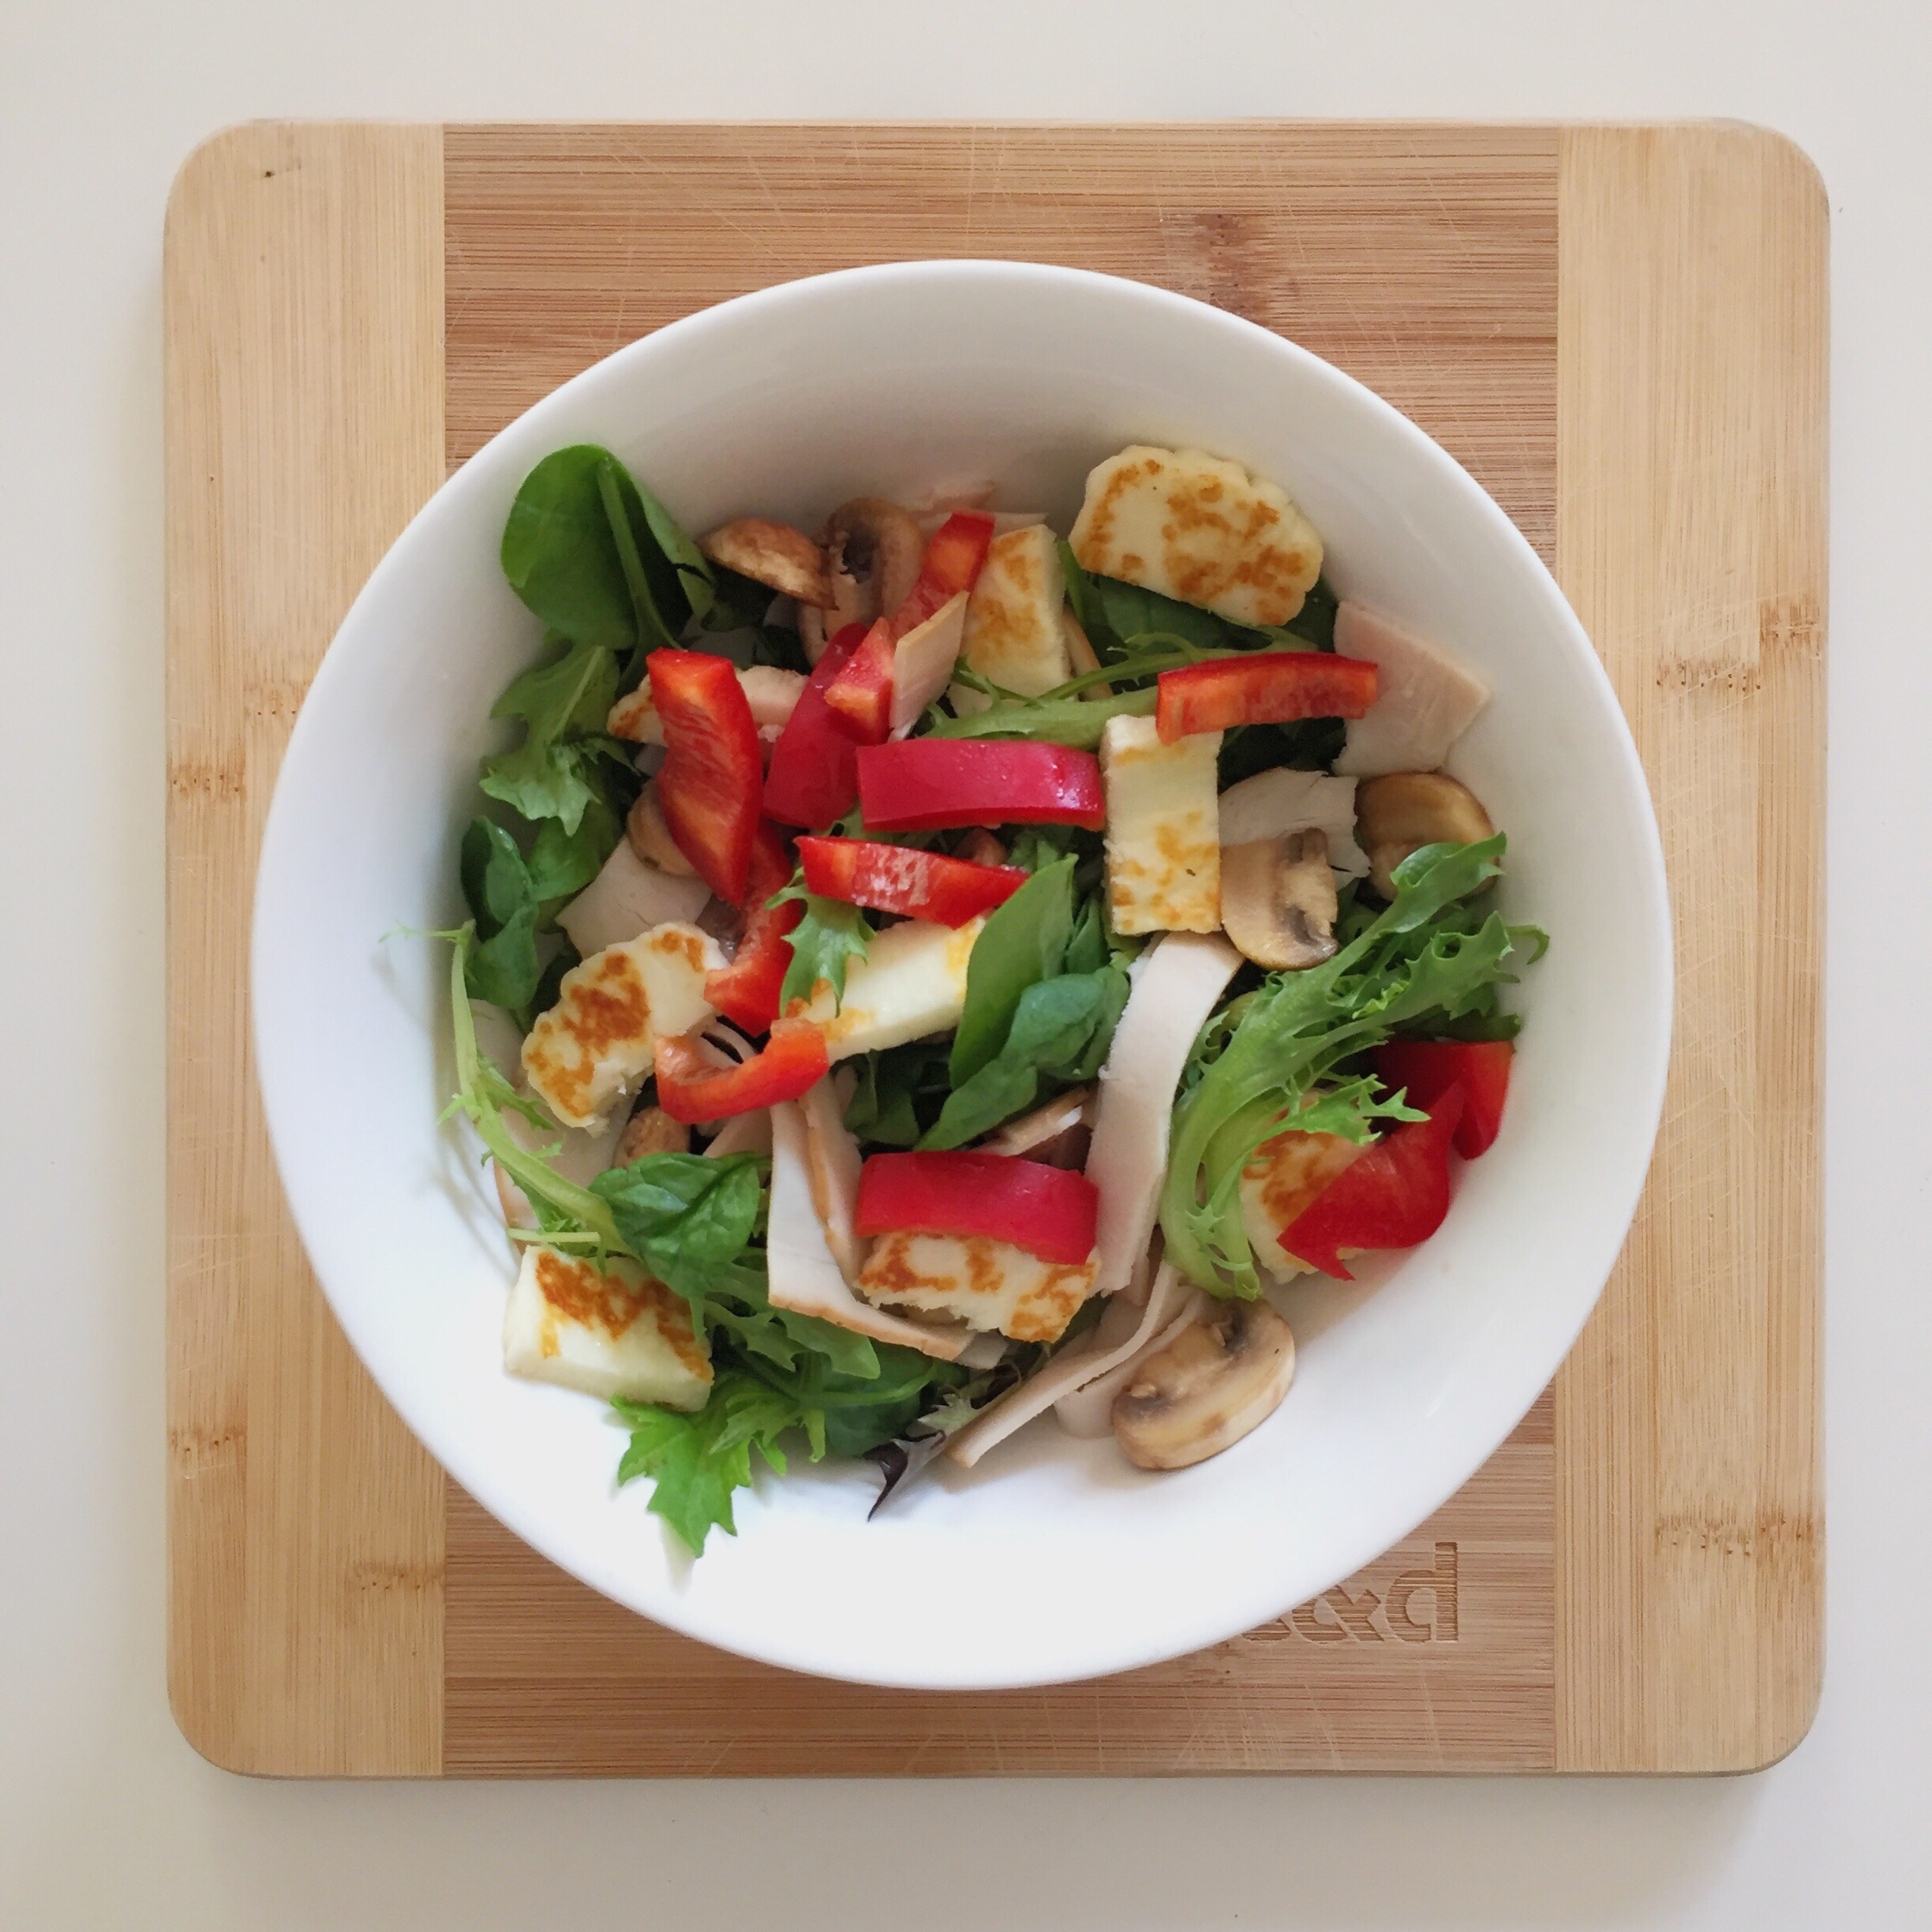 Lunch: Green salad, capsicum, mushrooms, turkey and haloumi (no dressing)